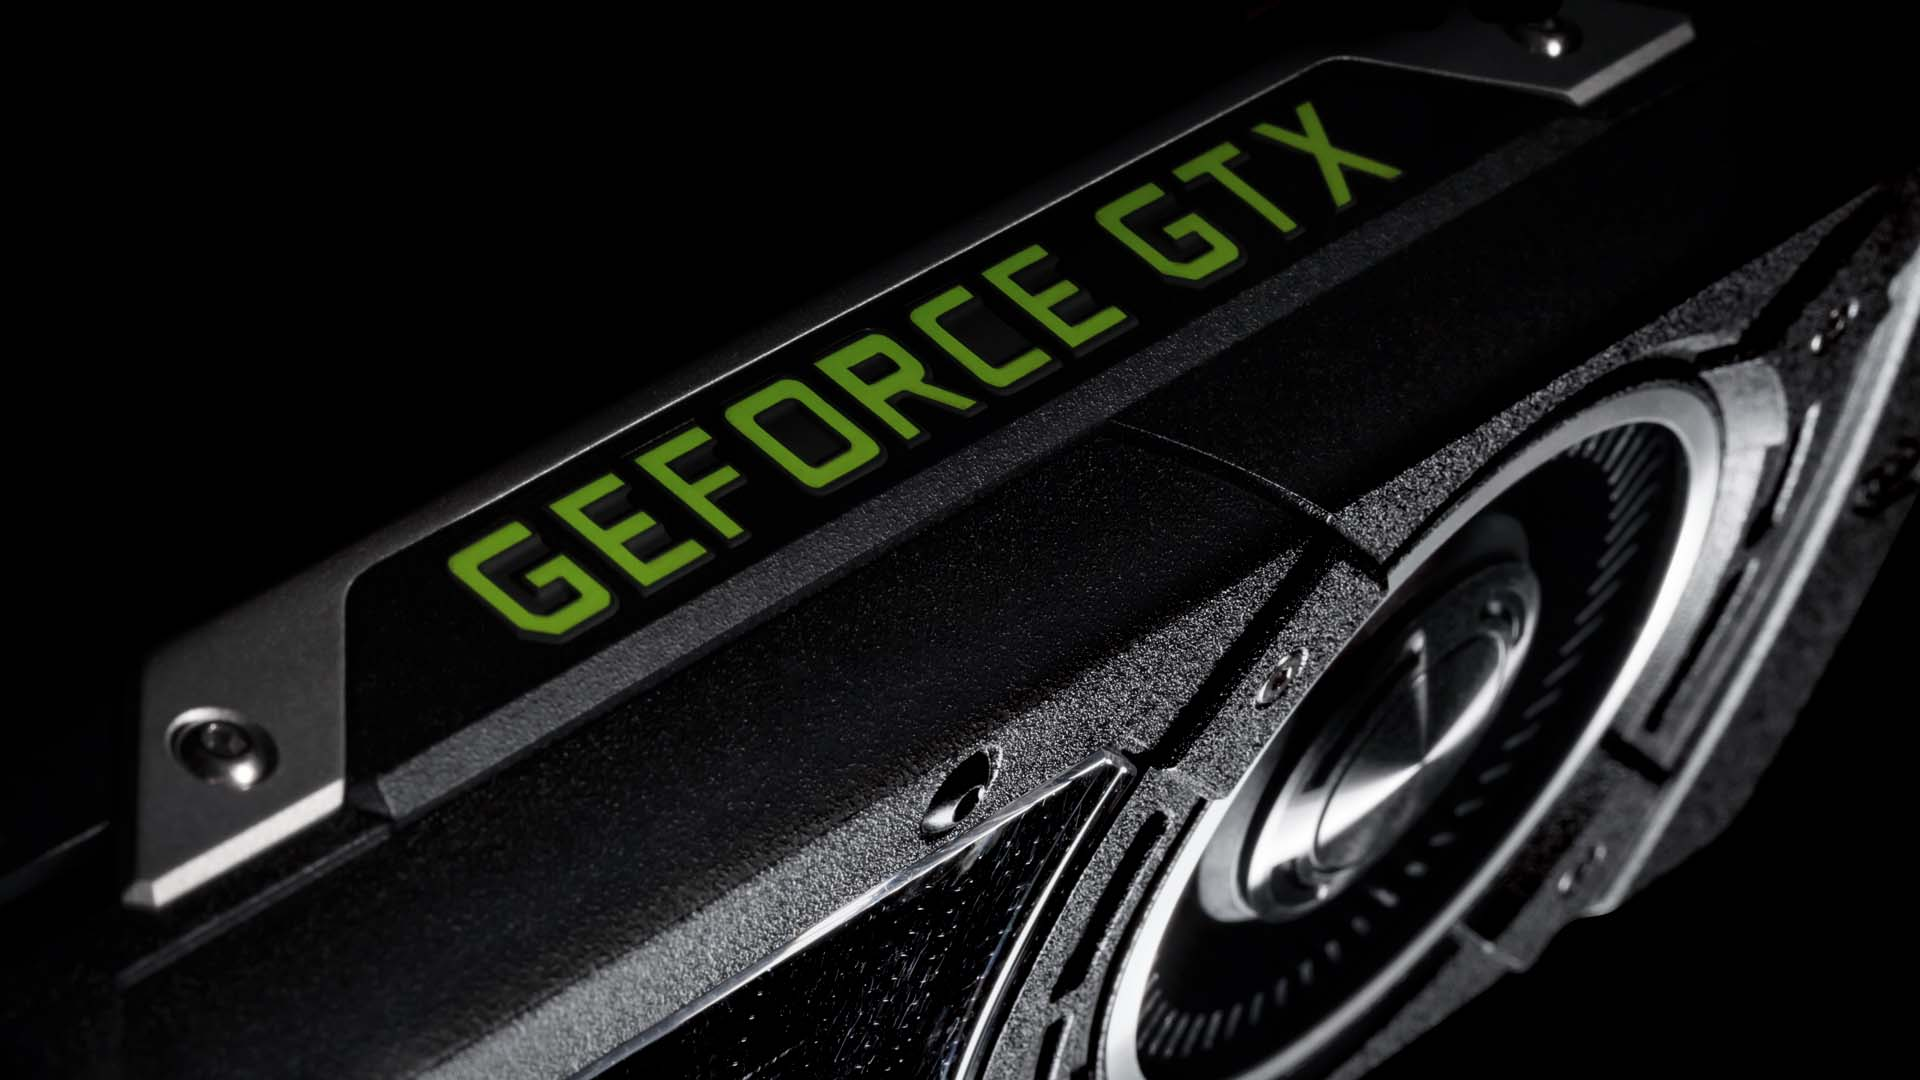 NVIDIA Rumored To Prep Its GTX 1050 Ti And 1060 For Upcoming Gaming Notebooks No M Branding Suggests Desktop Class GPUs Be Present